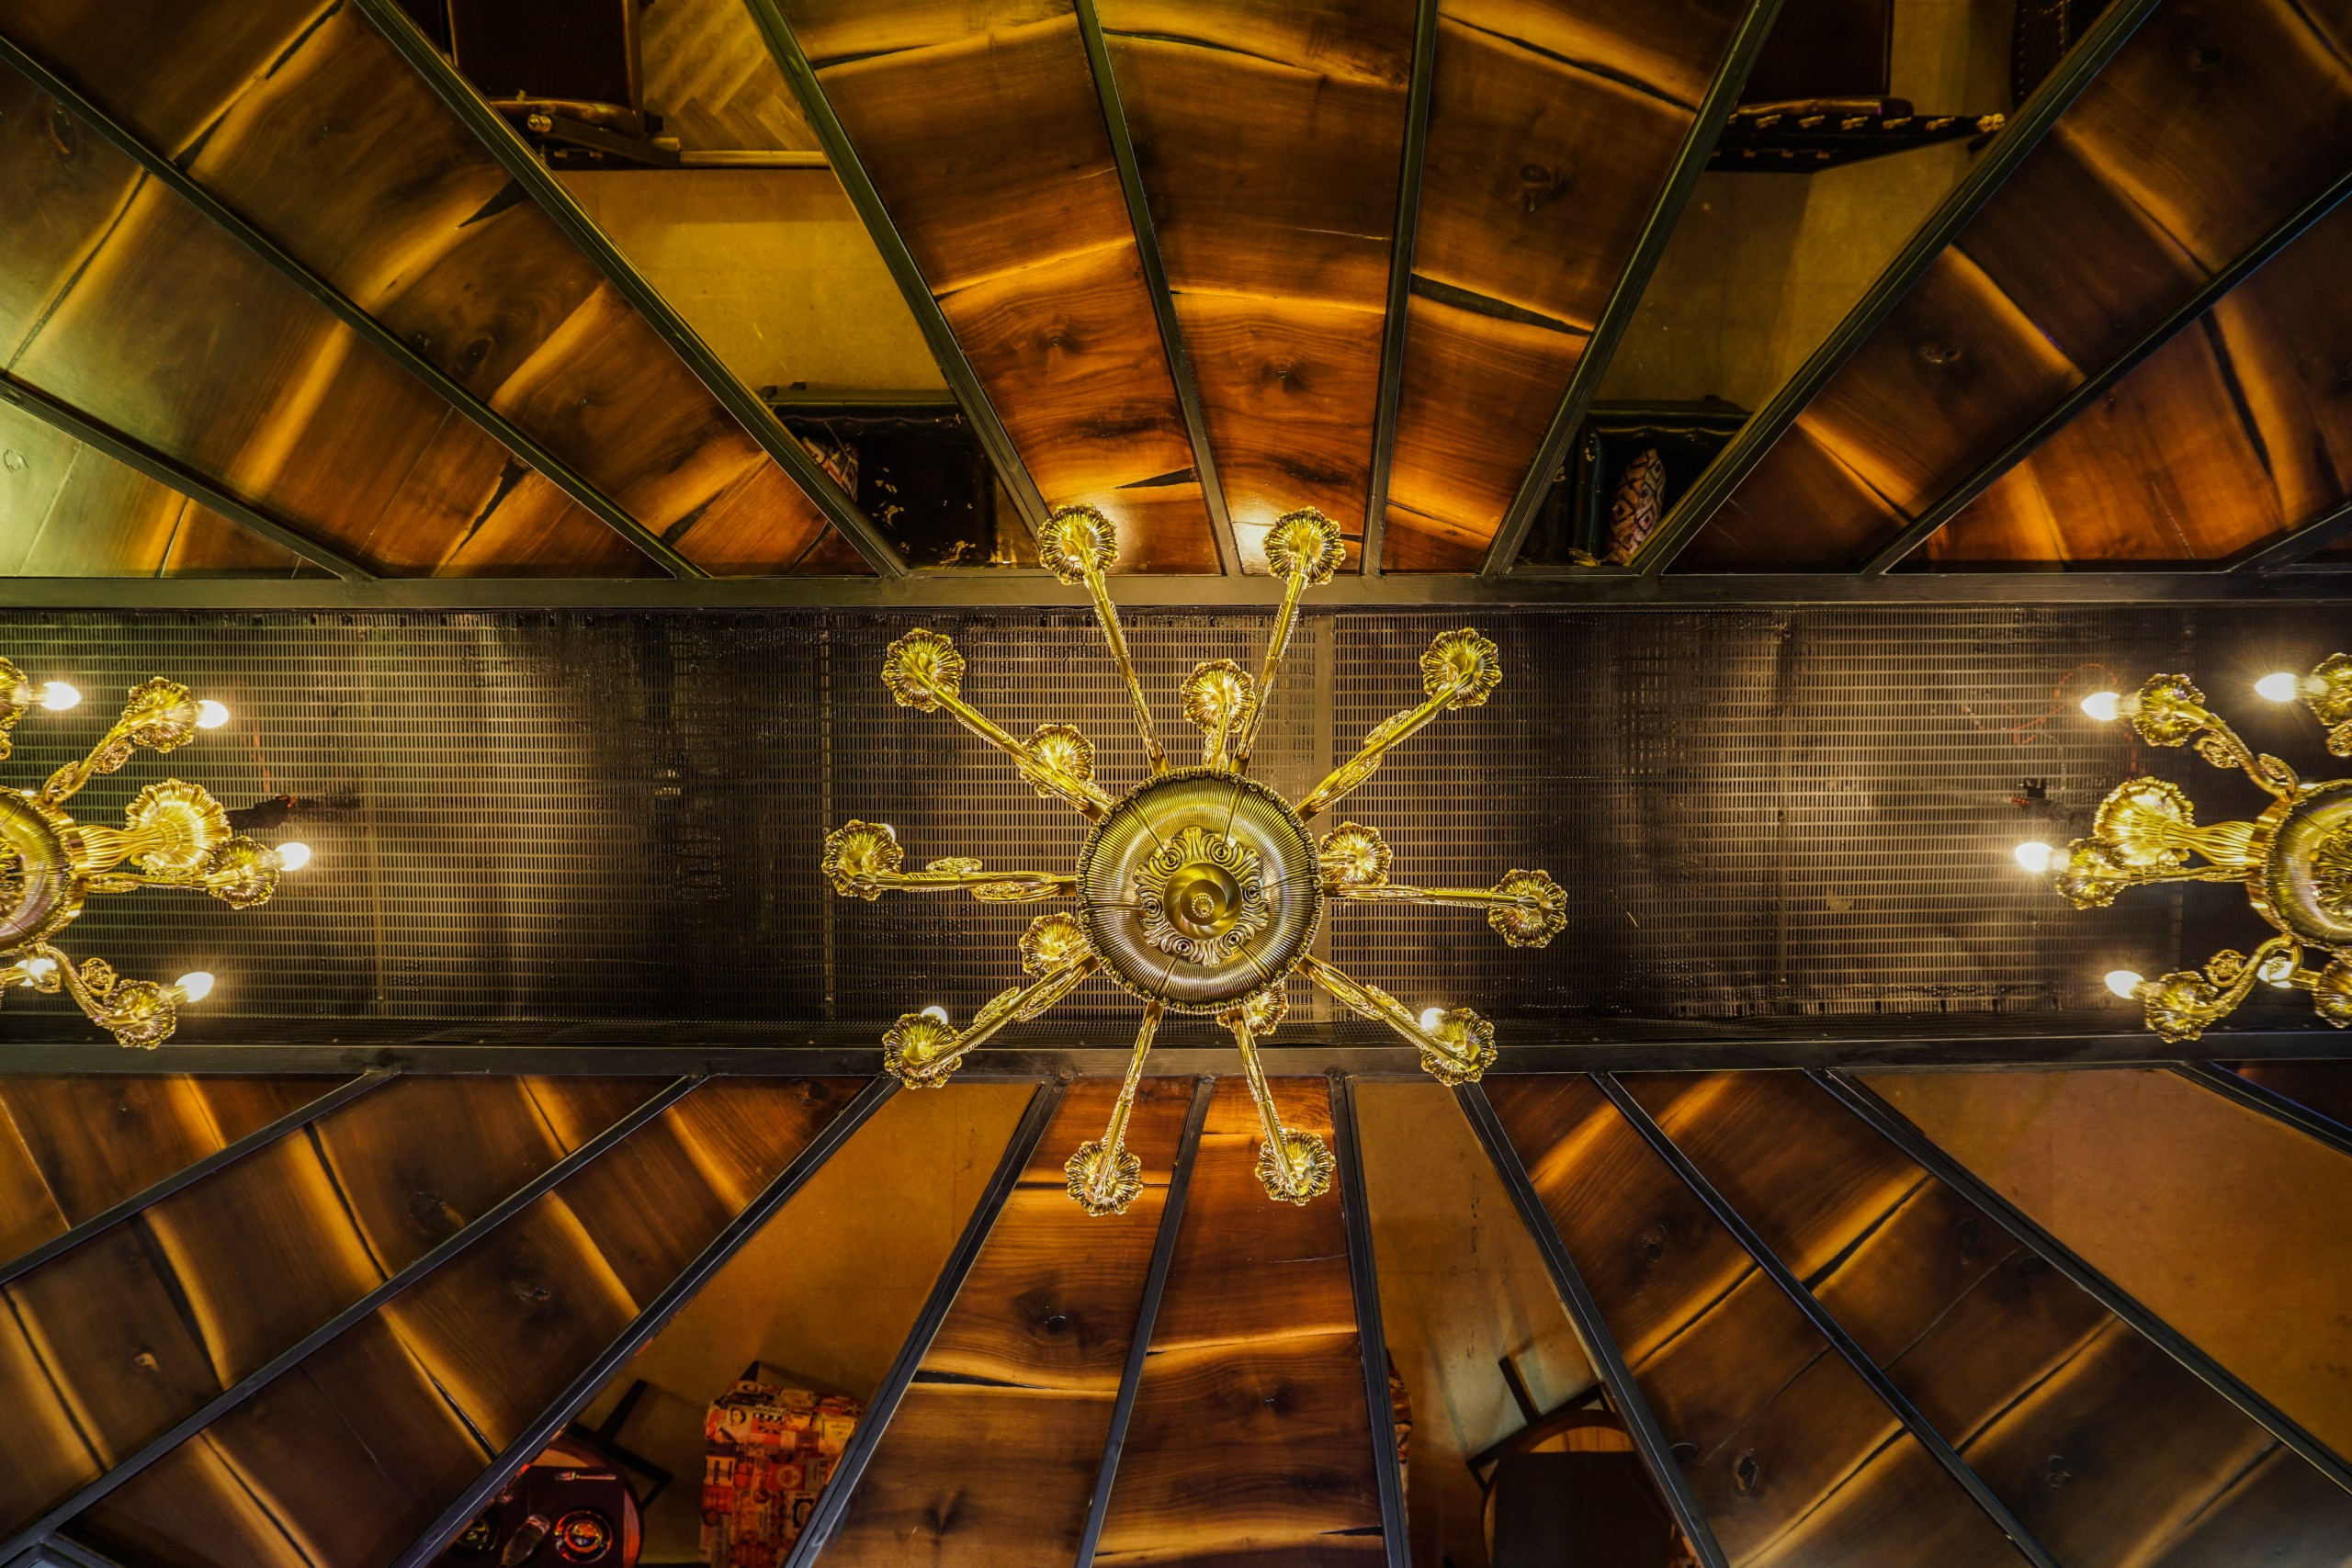 a kaleidoscopic roof with mirrors and chandelier